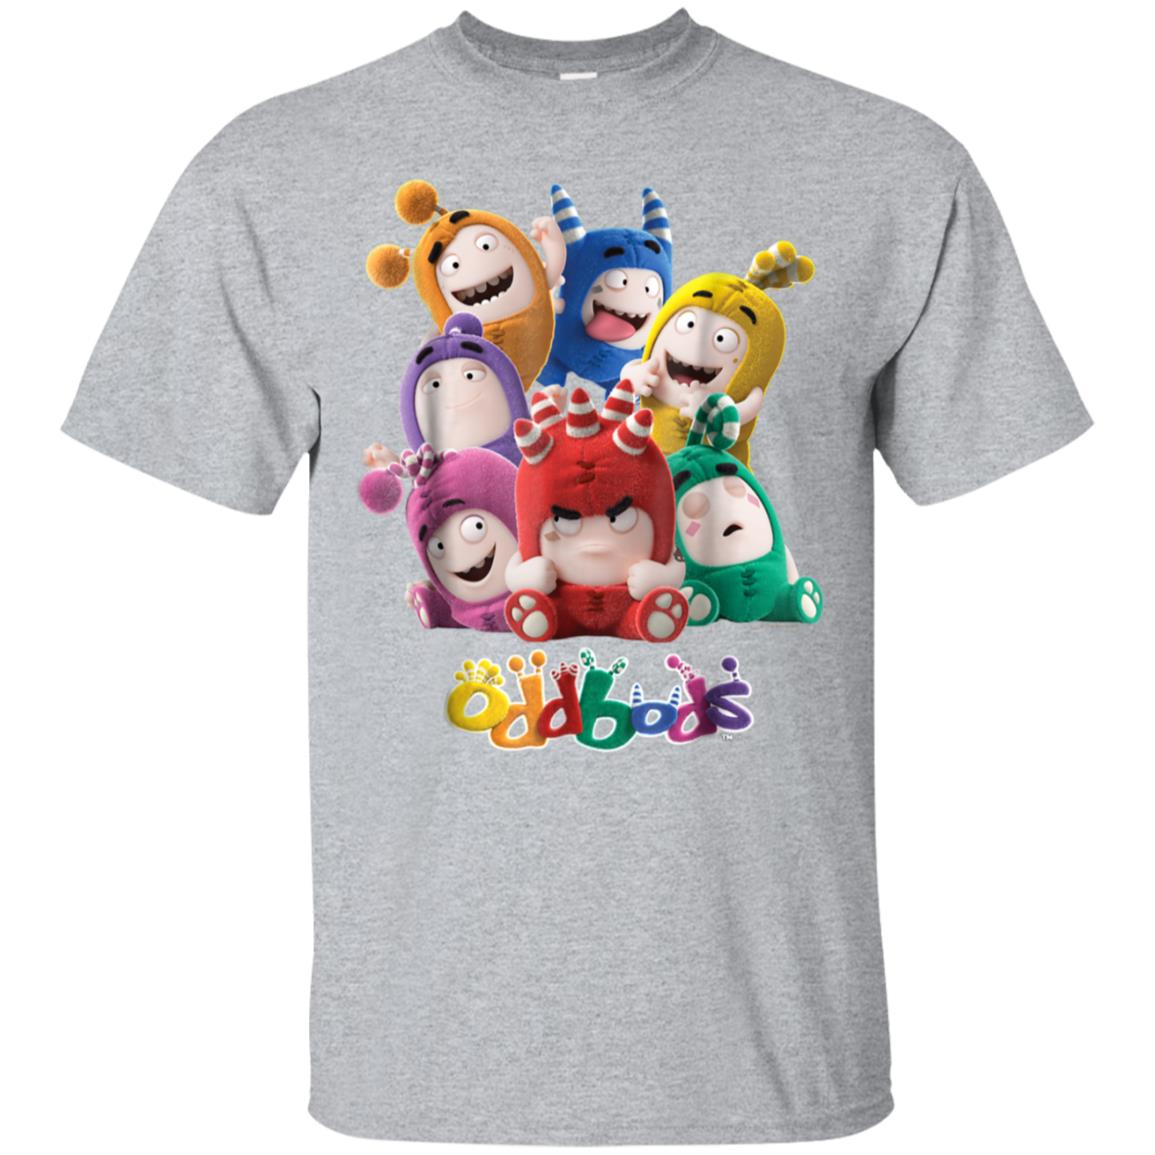 Oddbods All 7 Characters in Cute Funny Poses T Shirt 99promocode